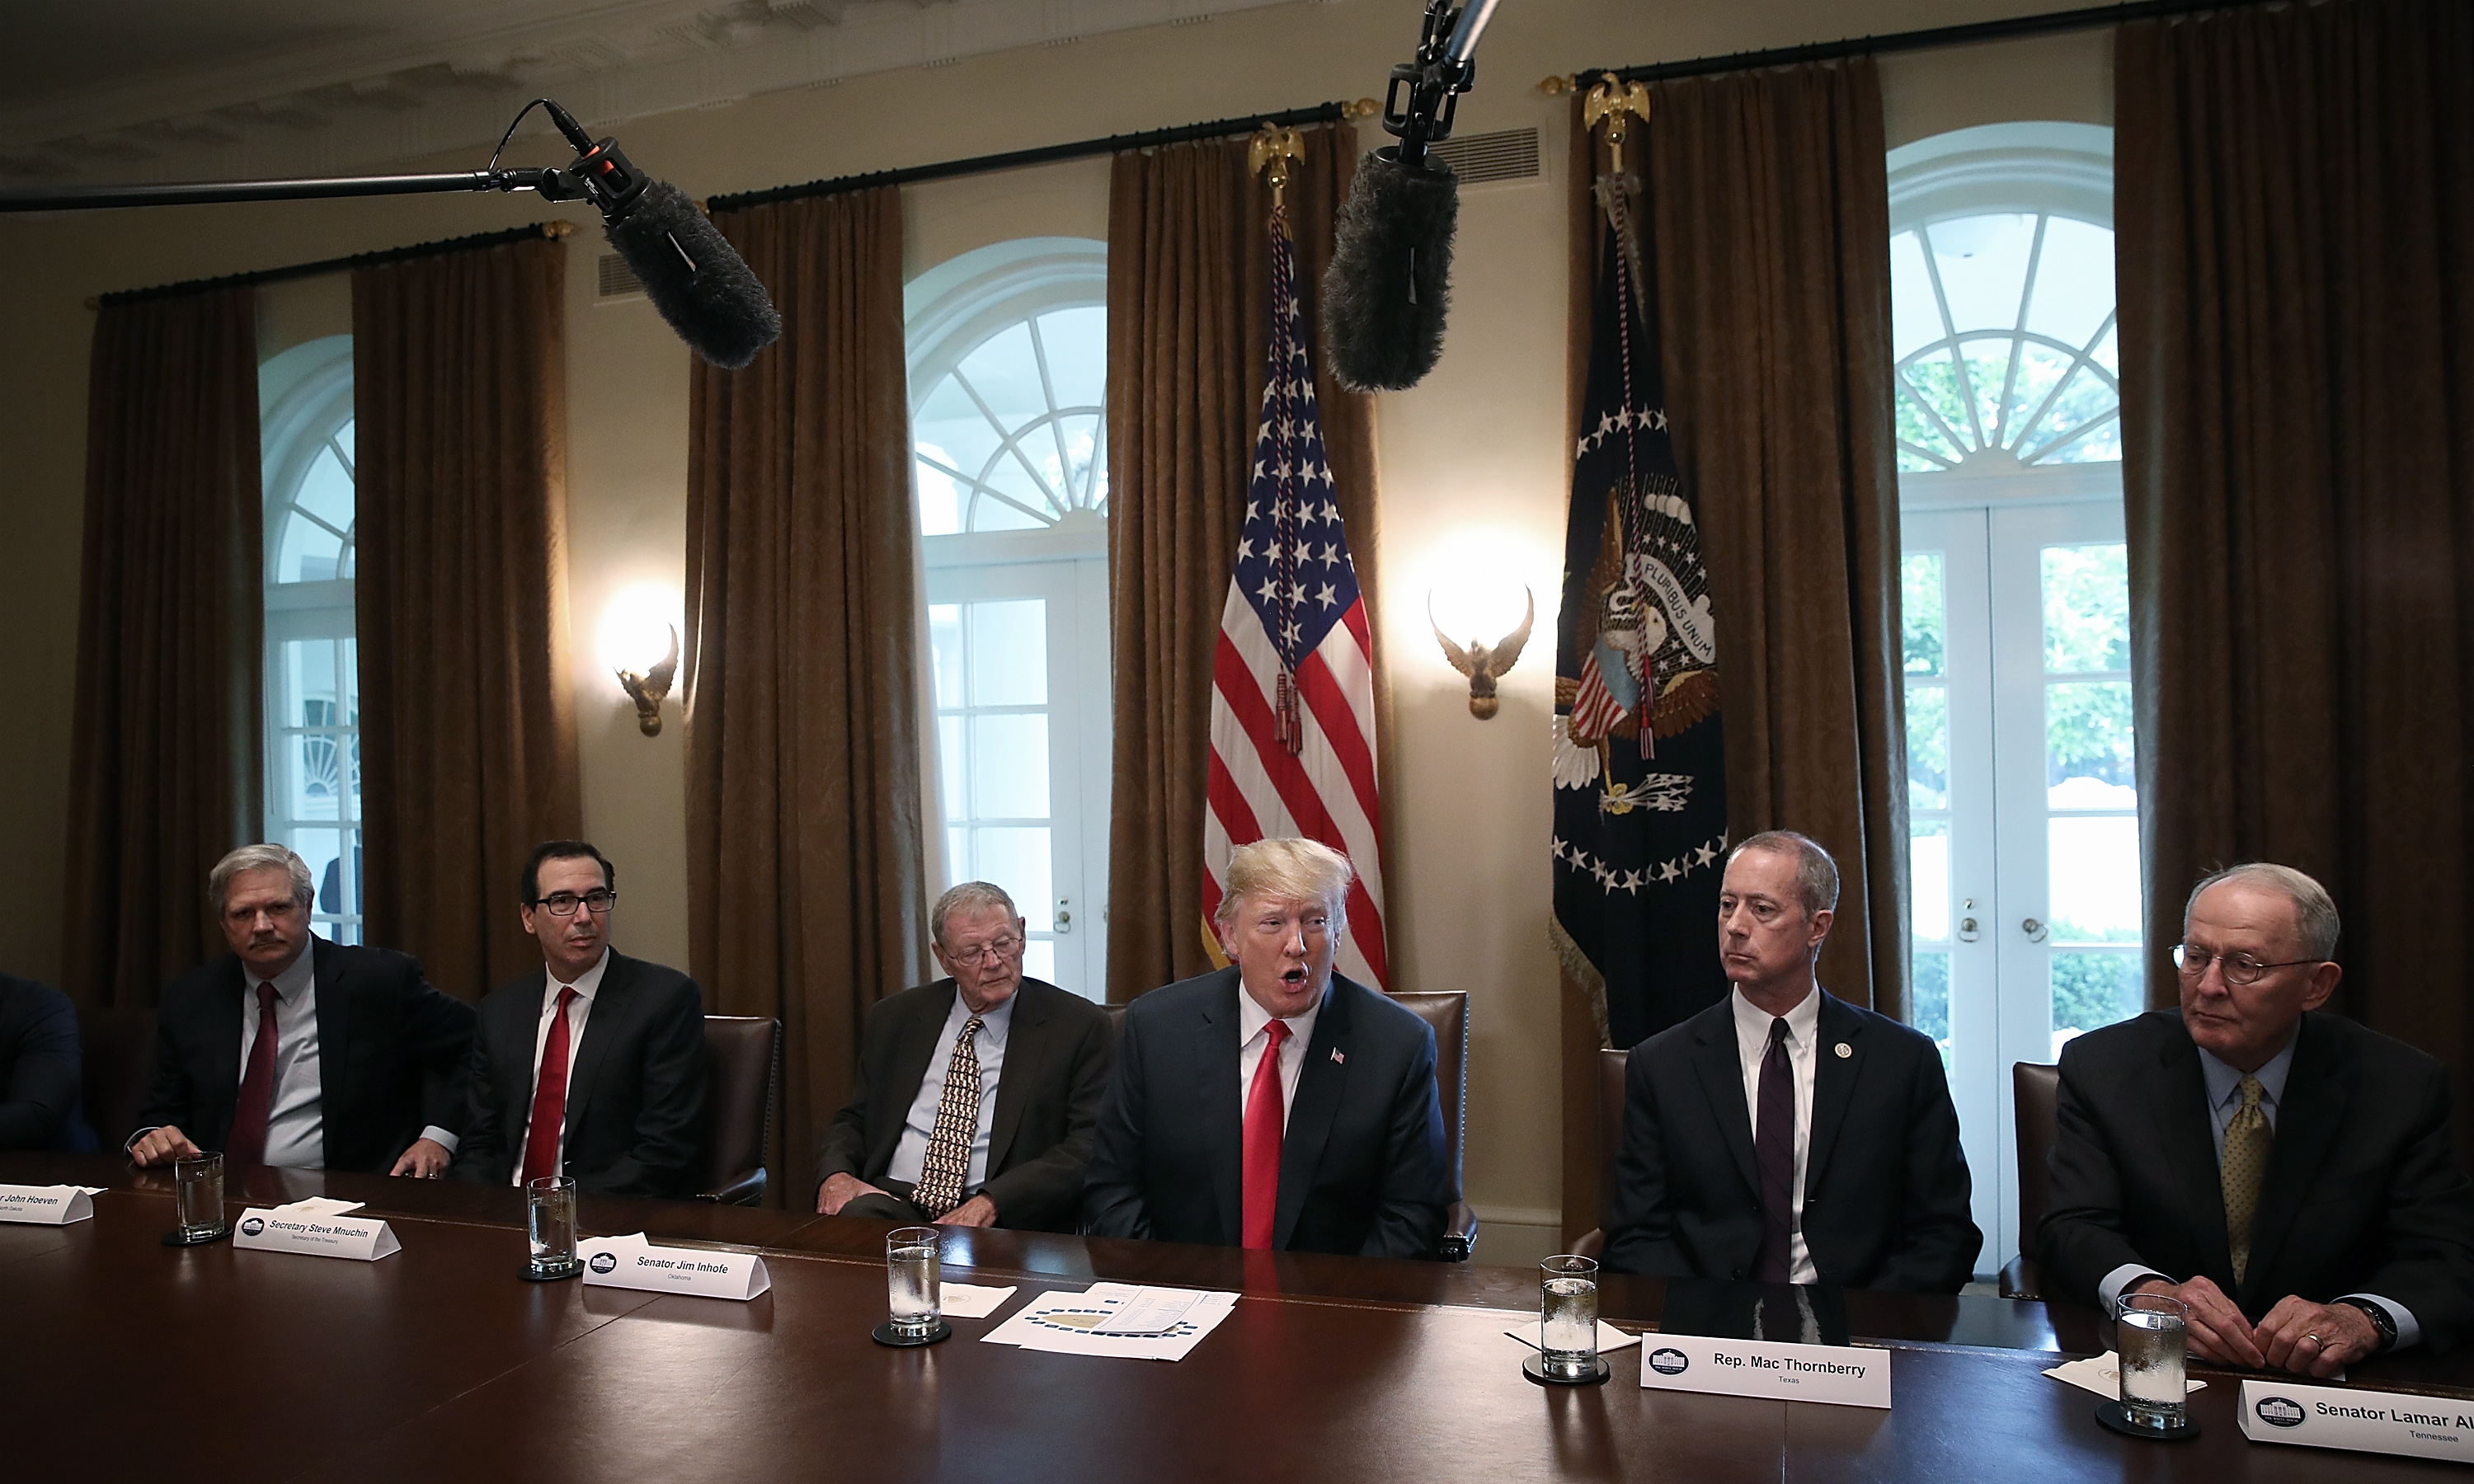 Live Trump Ends His Policy Of Family Separations With Executive